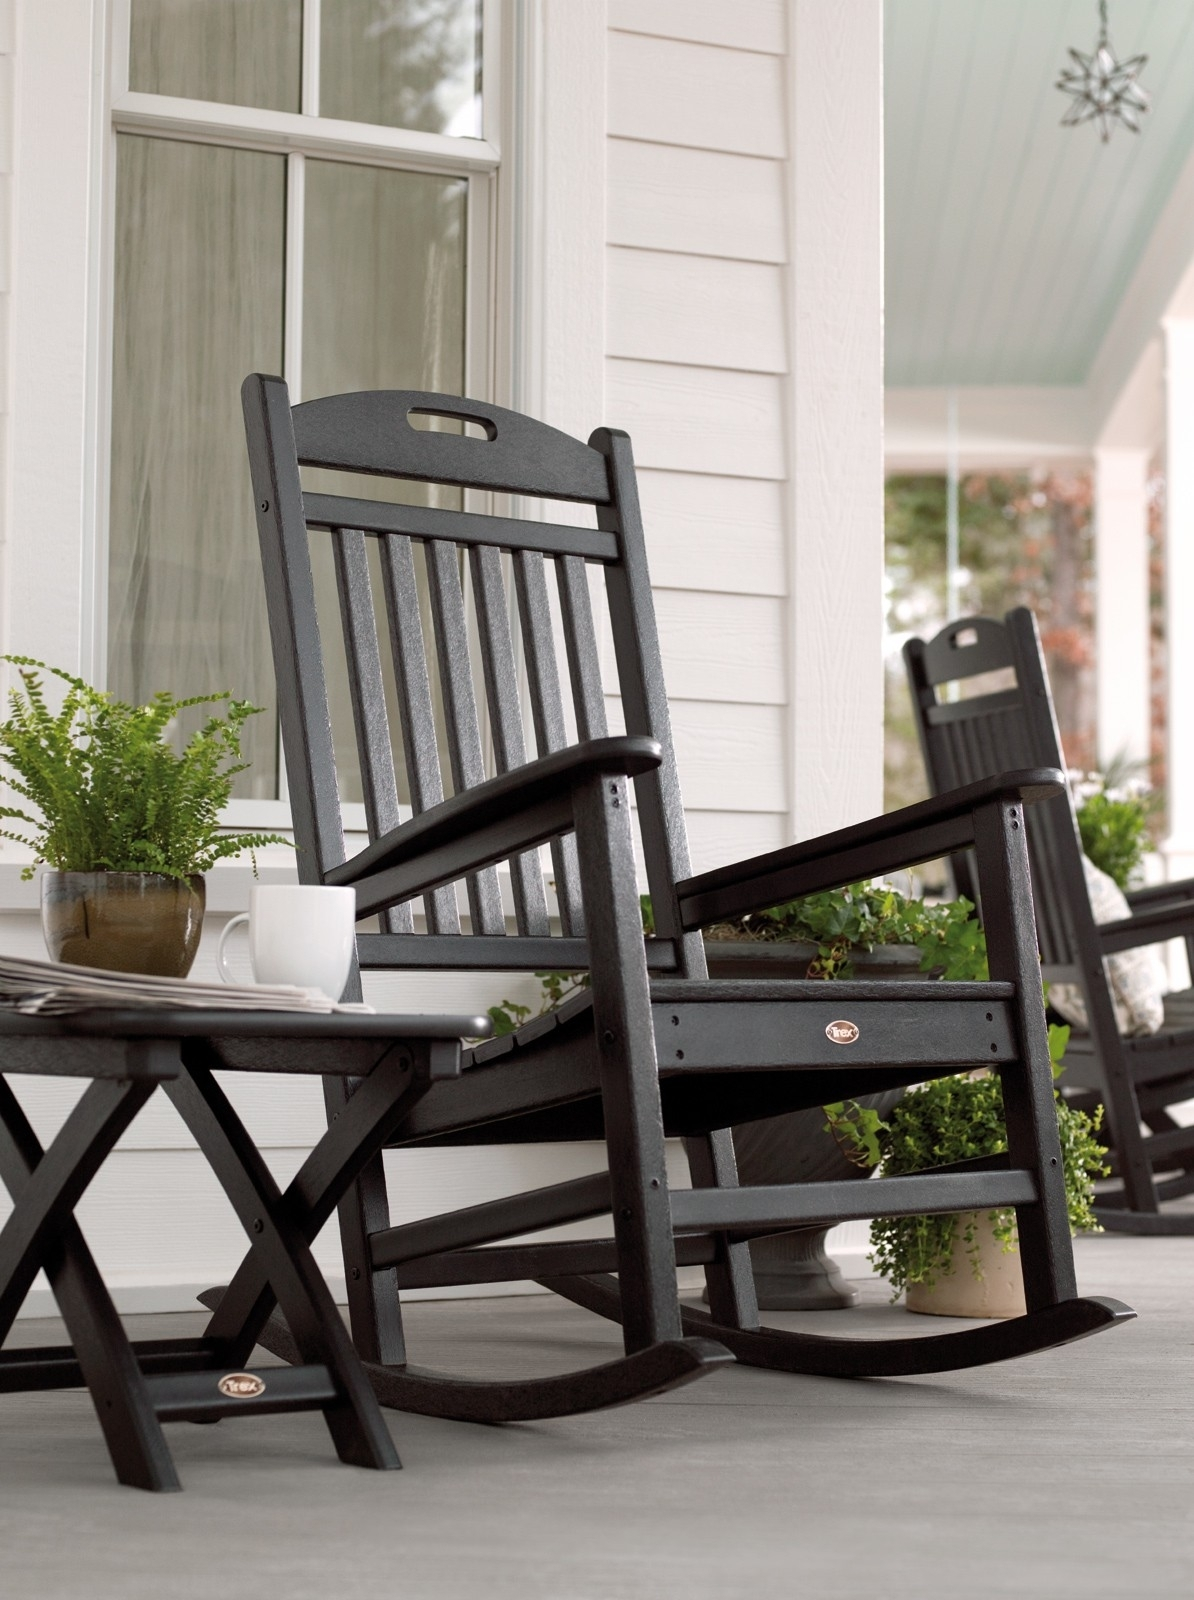 Yacht Club Rocking Chair Intended For Rocking Chairs For Outdoors (#15 of 15)